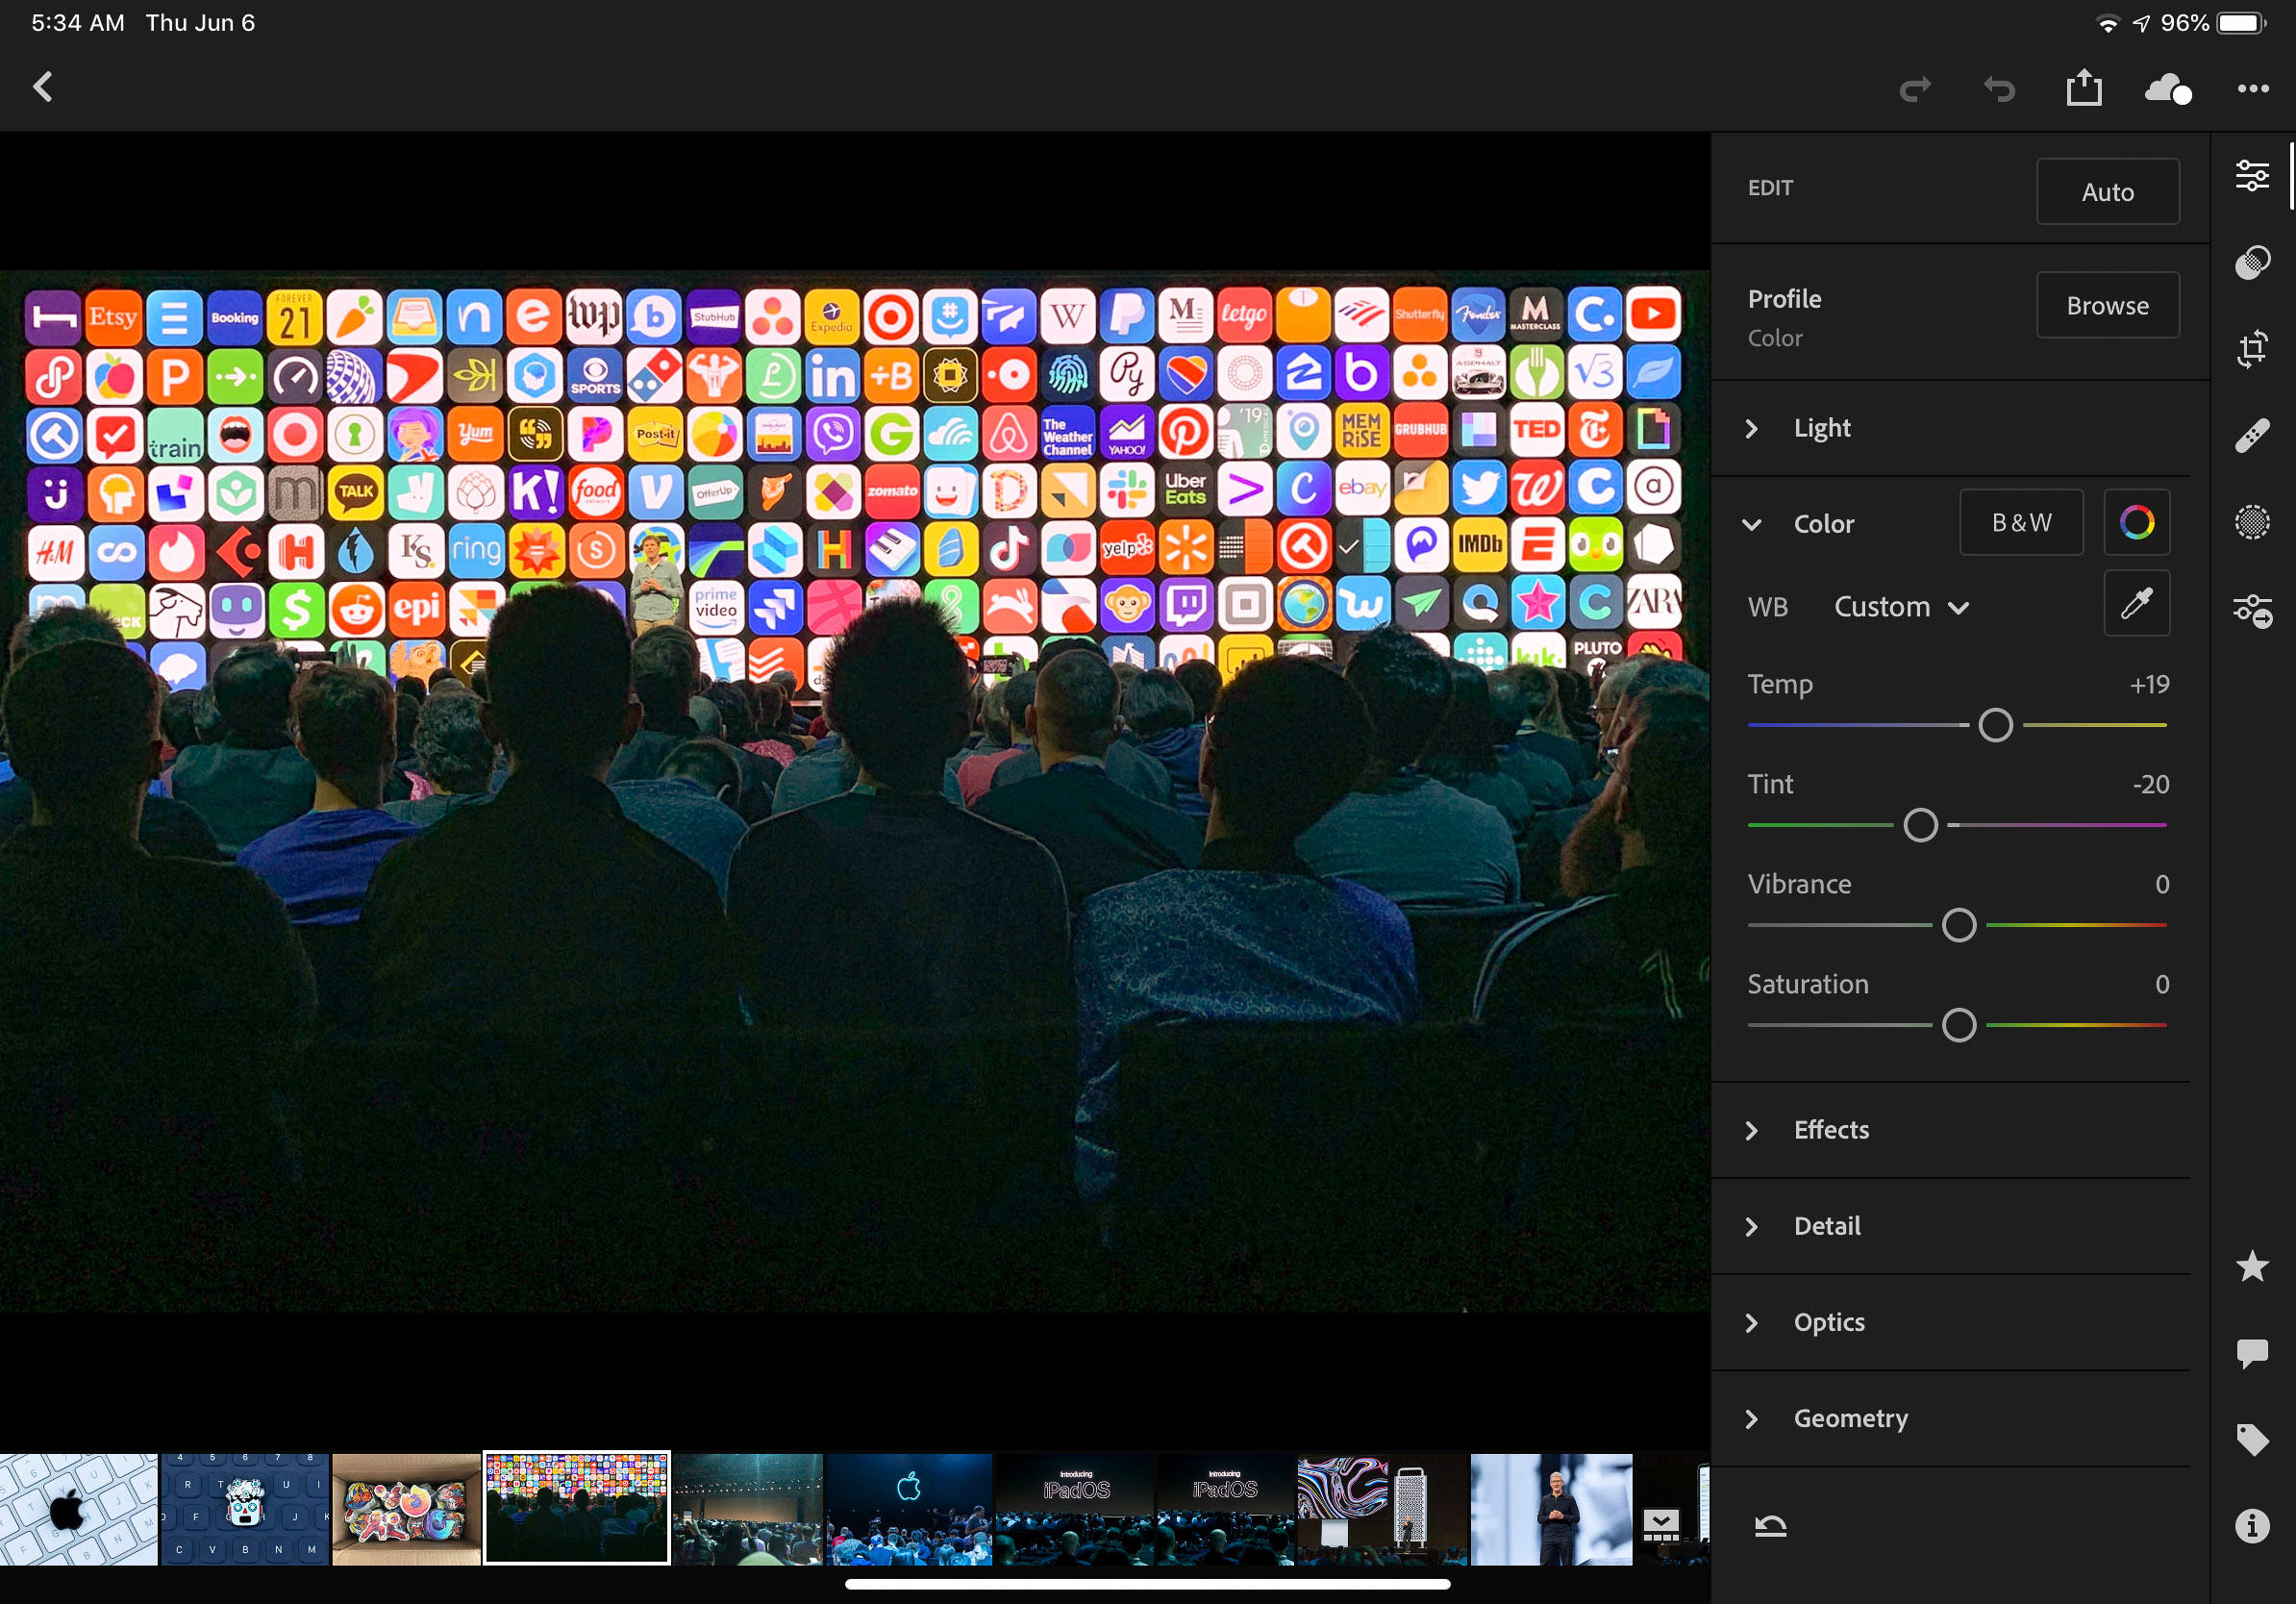 Adobe Lightroom for iPad used to edit a photo of Apple's WWDC 2019 conference.